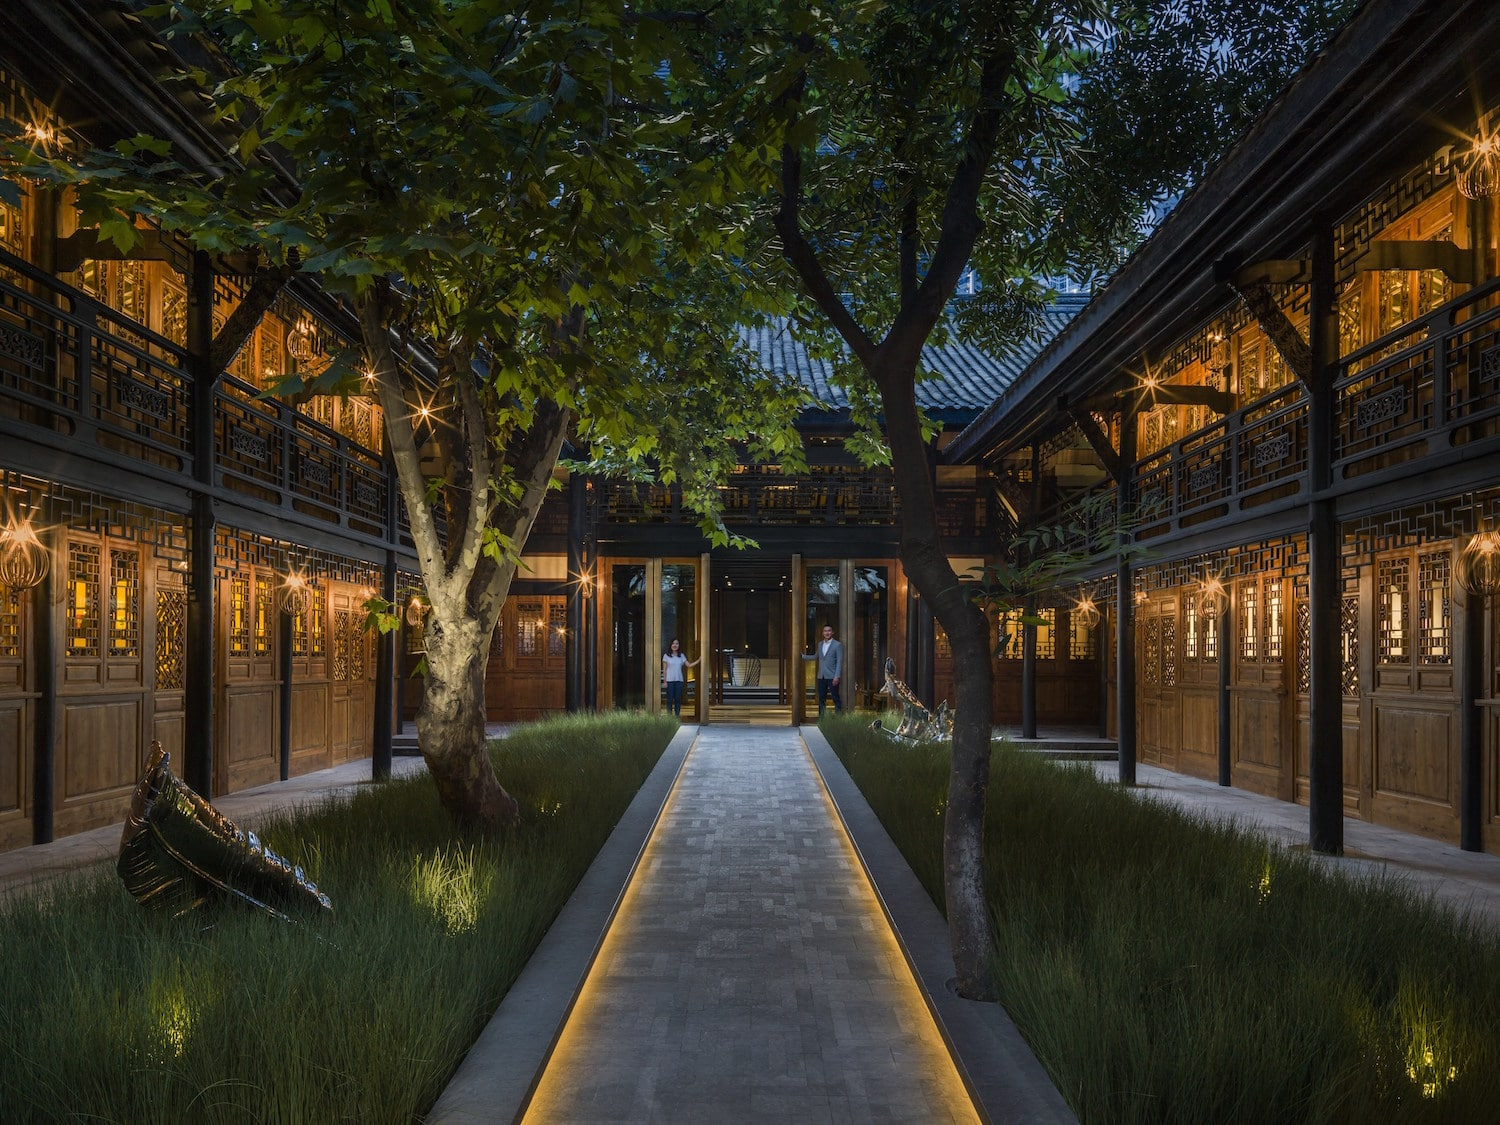 Walk into the courtyard along a tree-lined walkway. (Photo credit: The Temple House)